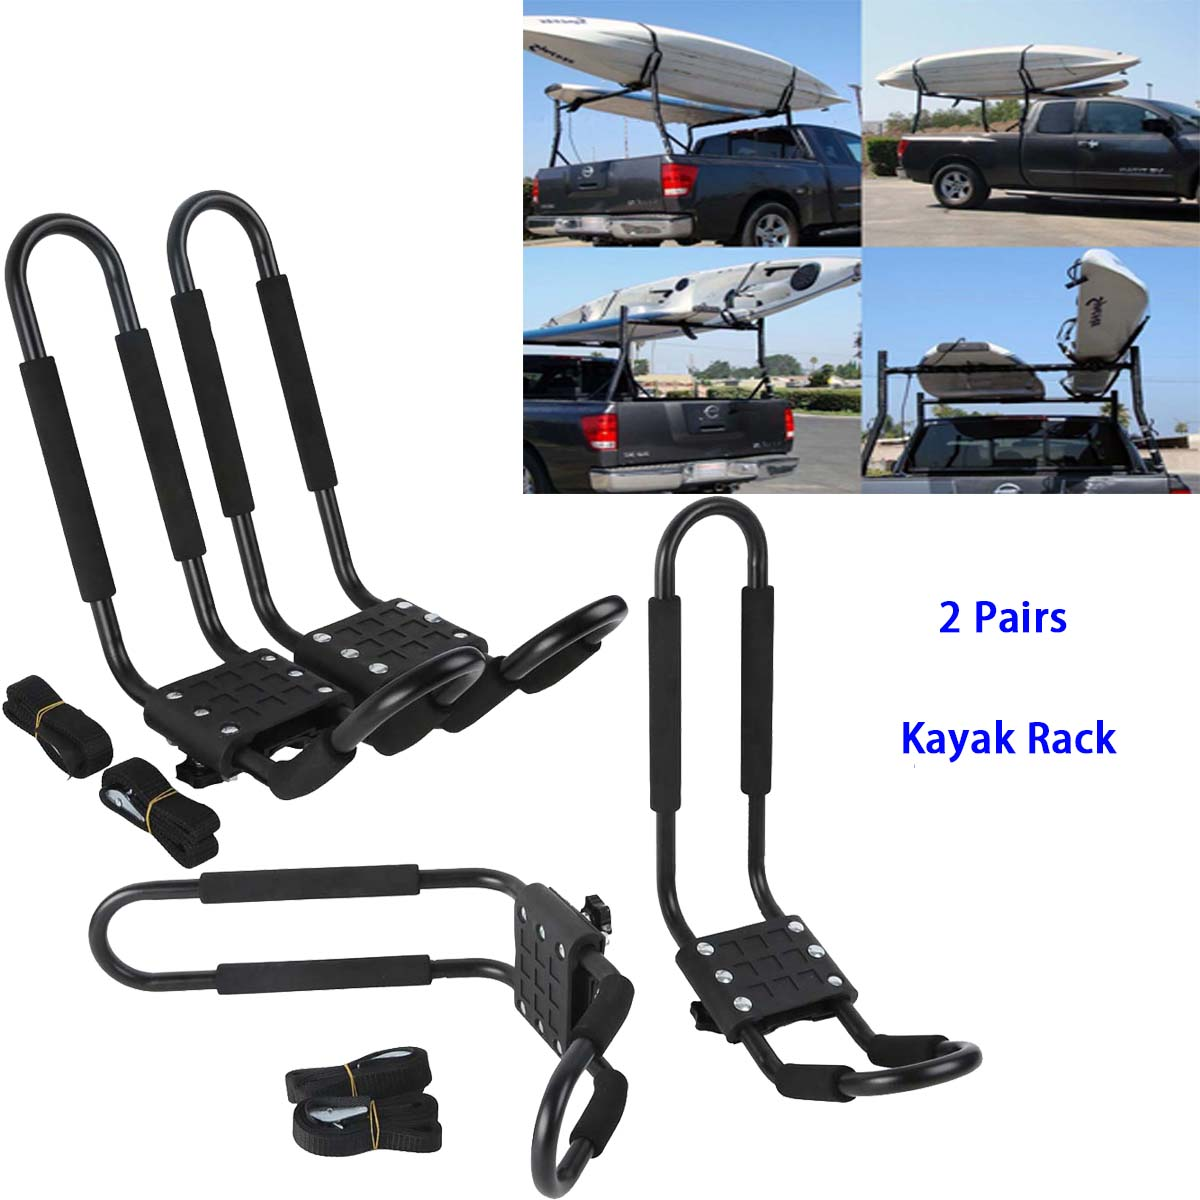 Kayak Roof Rack For Cars >> Details About 2 Pair Canoe Boat Kayak Roof Rack Car Suv Truck Top Mount Carrier J Cross Bar Us